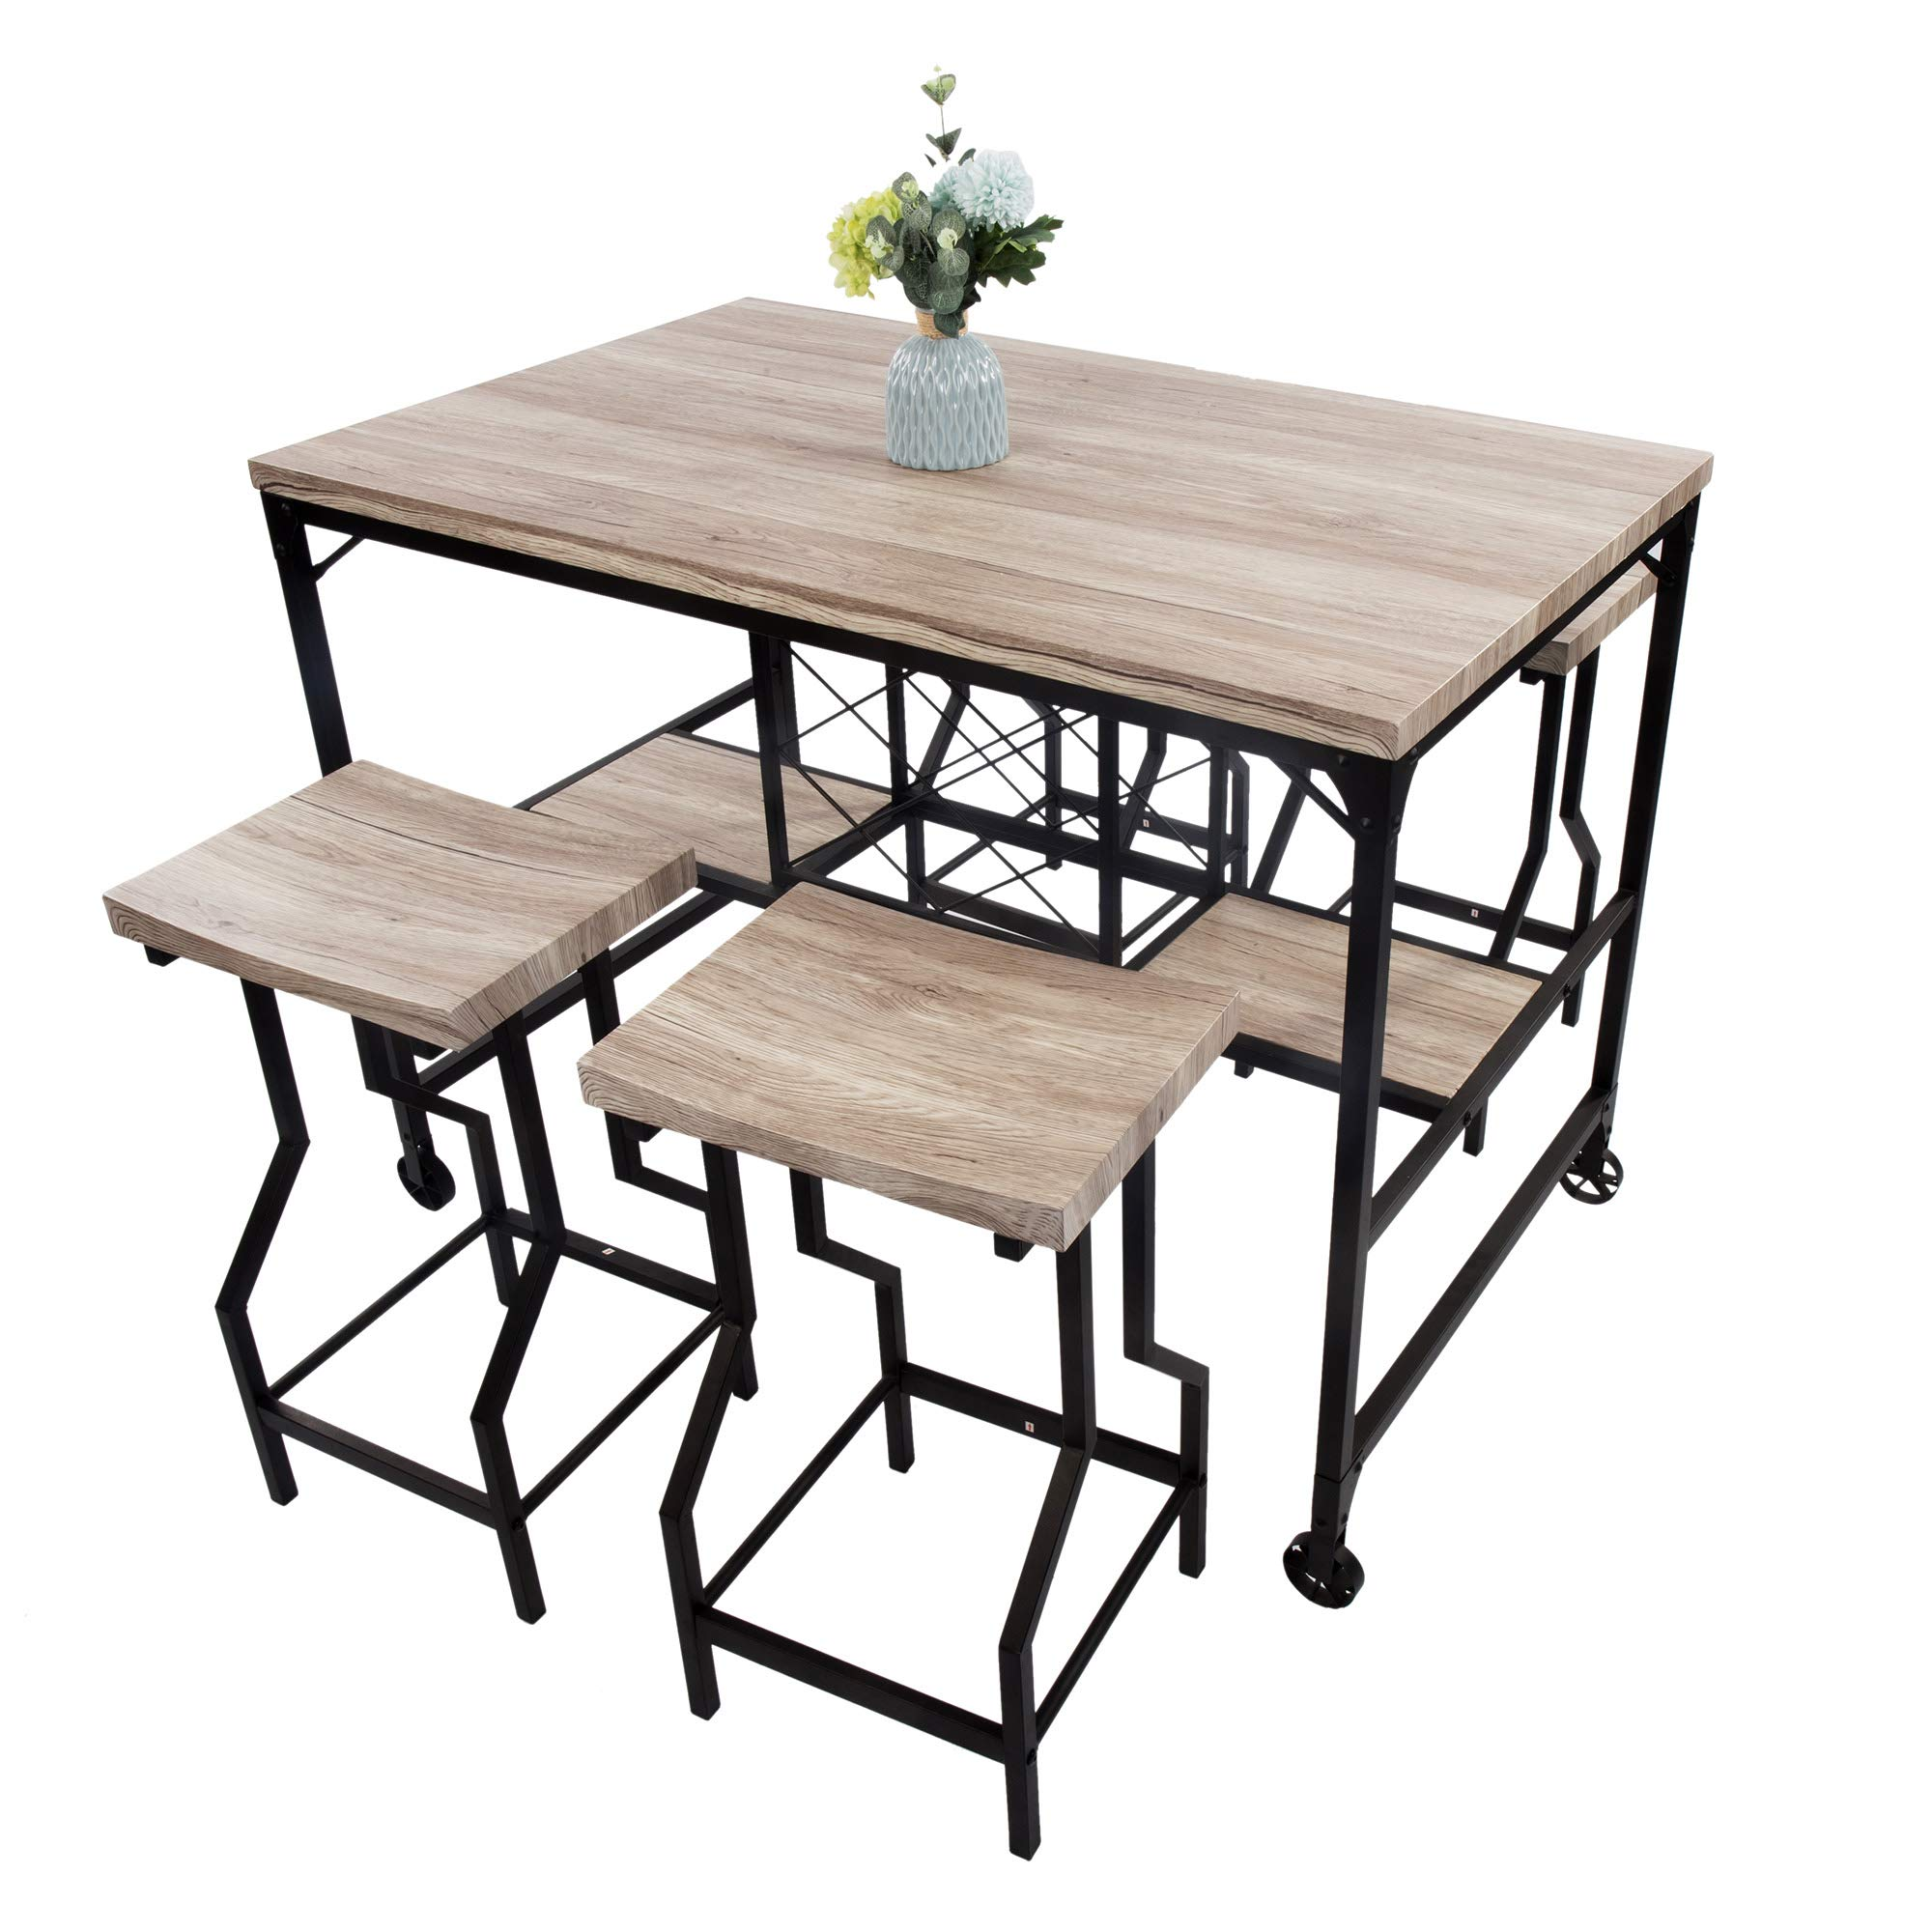 LUCKYERMORE 5 Piece Counter Height Dining Table Set Kitchen Table and 4 Bar Chair High Top Table Chair Set for Any Room, White by LUCKYERMORE